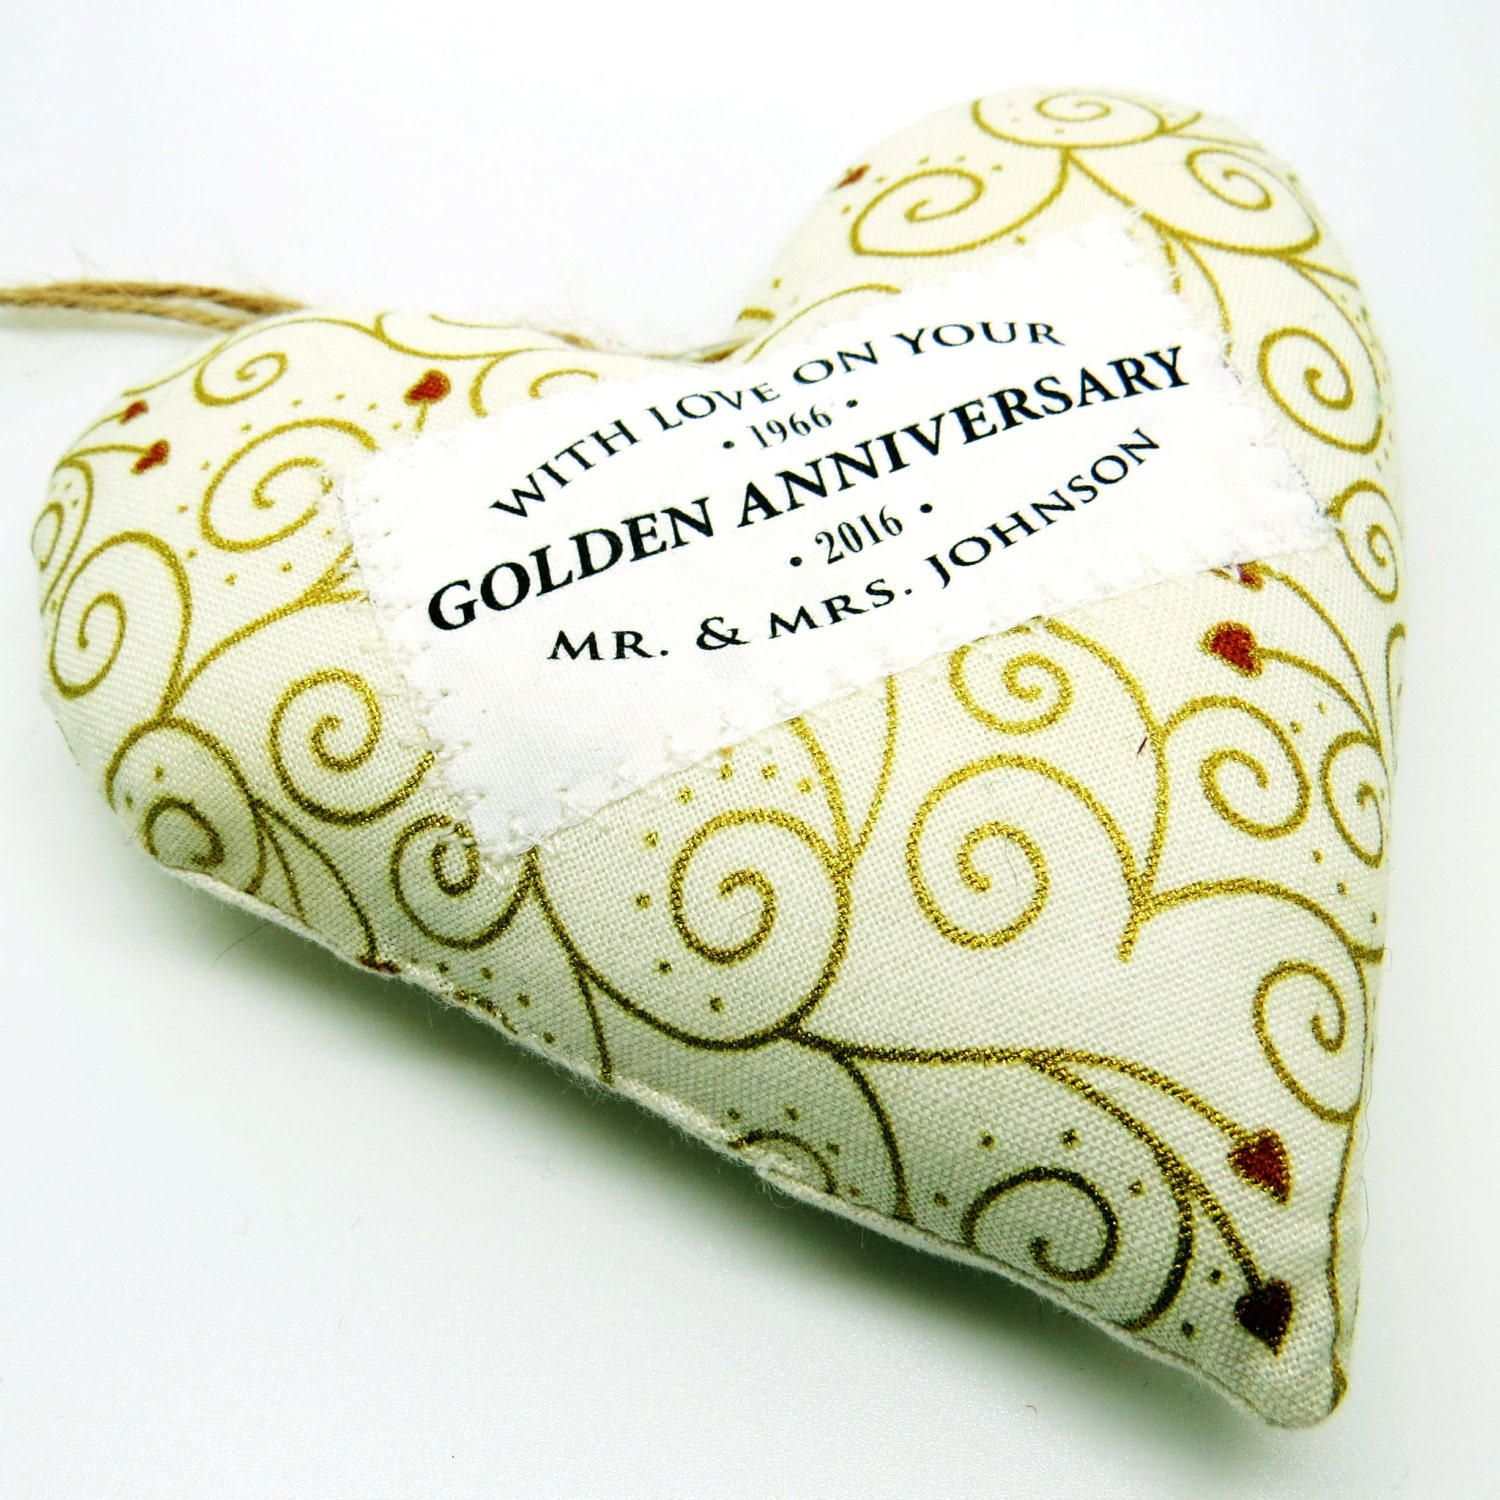 Golden wedding 50th anniversary gift personalised fabric for Present for 50th wedding anniversary